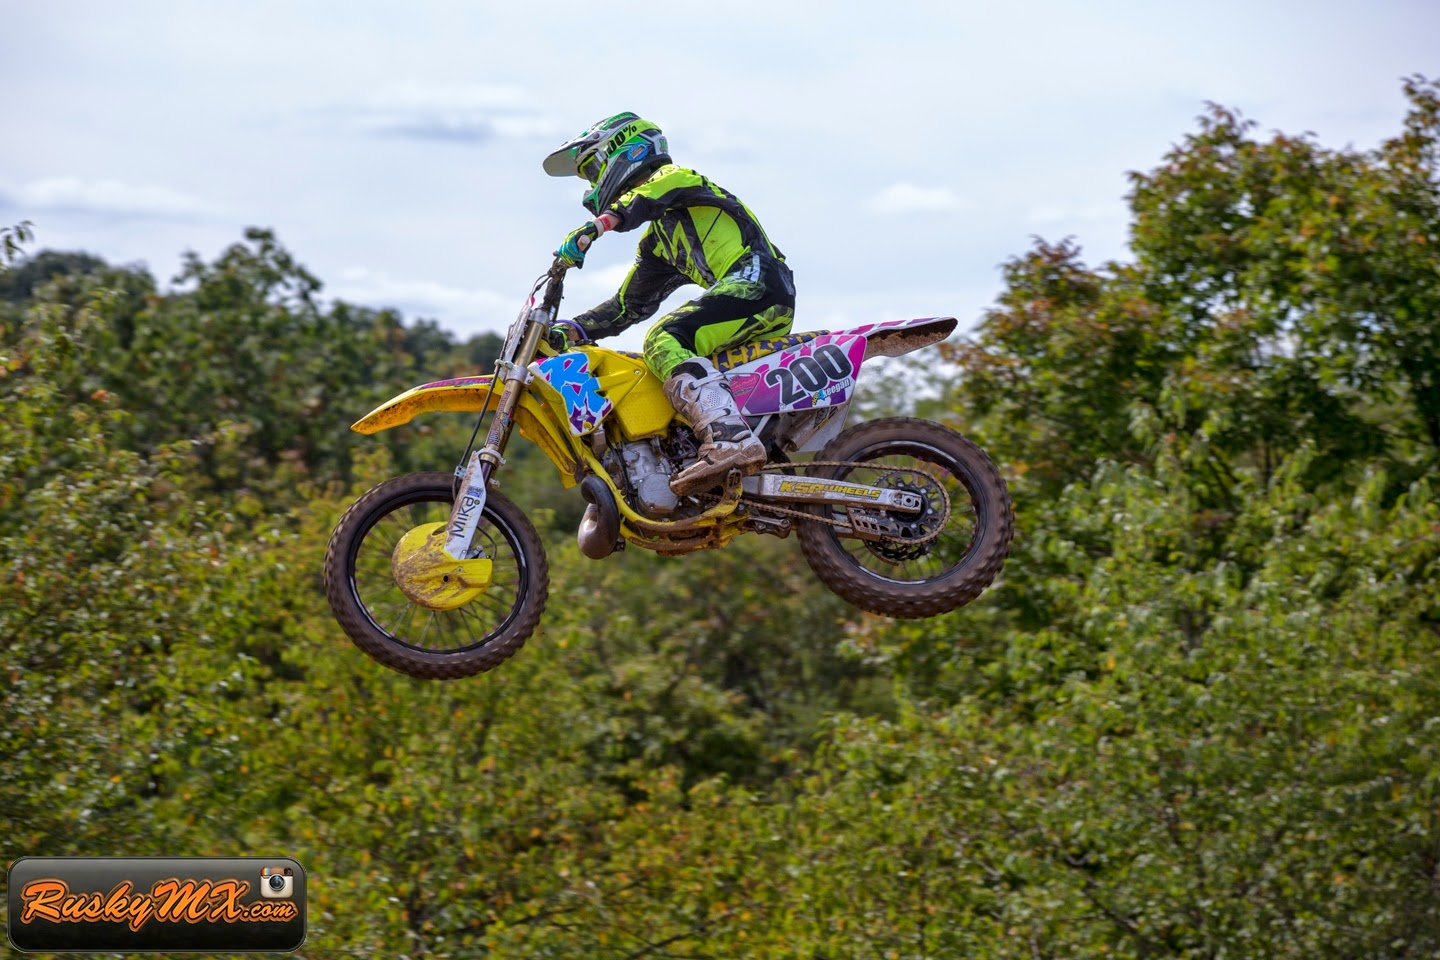 Mike McDade 2 Stroke Shootout Sleepy Hollow